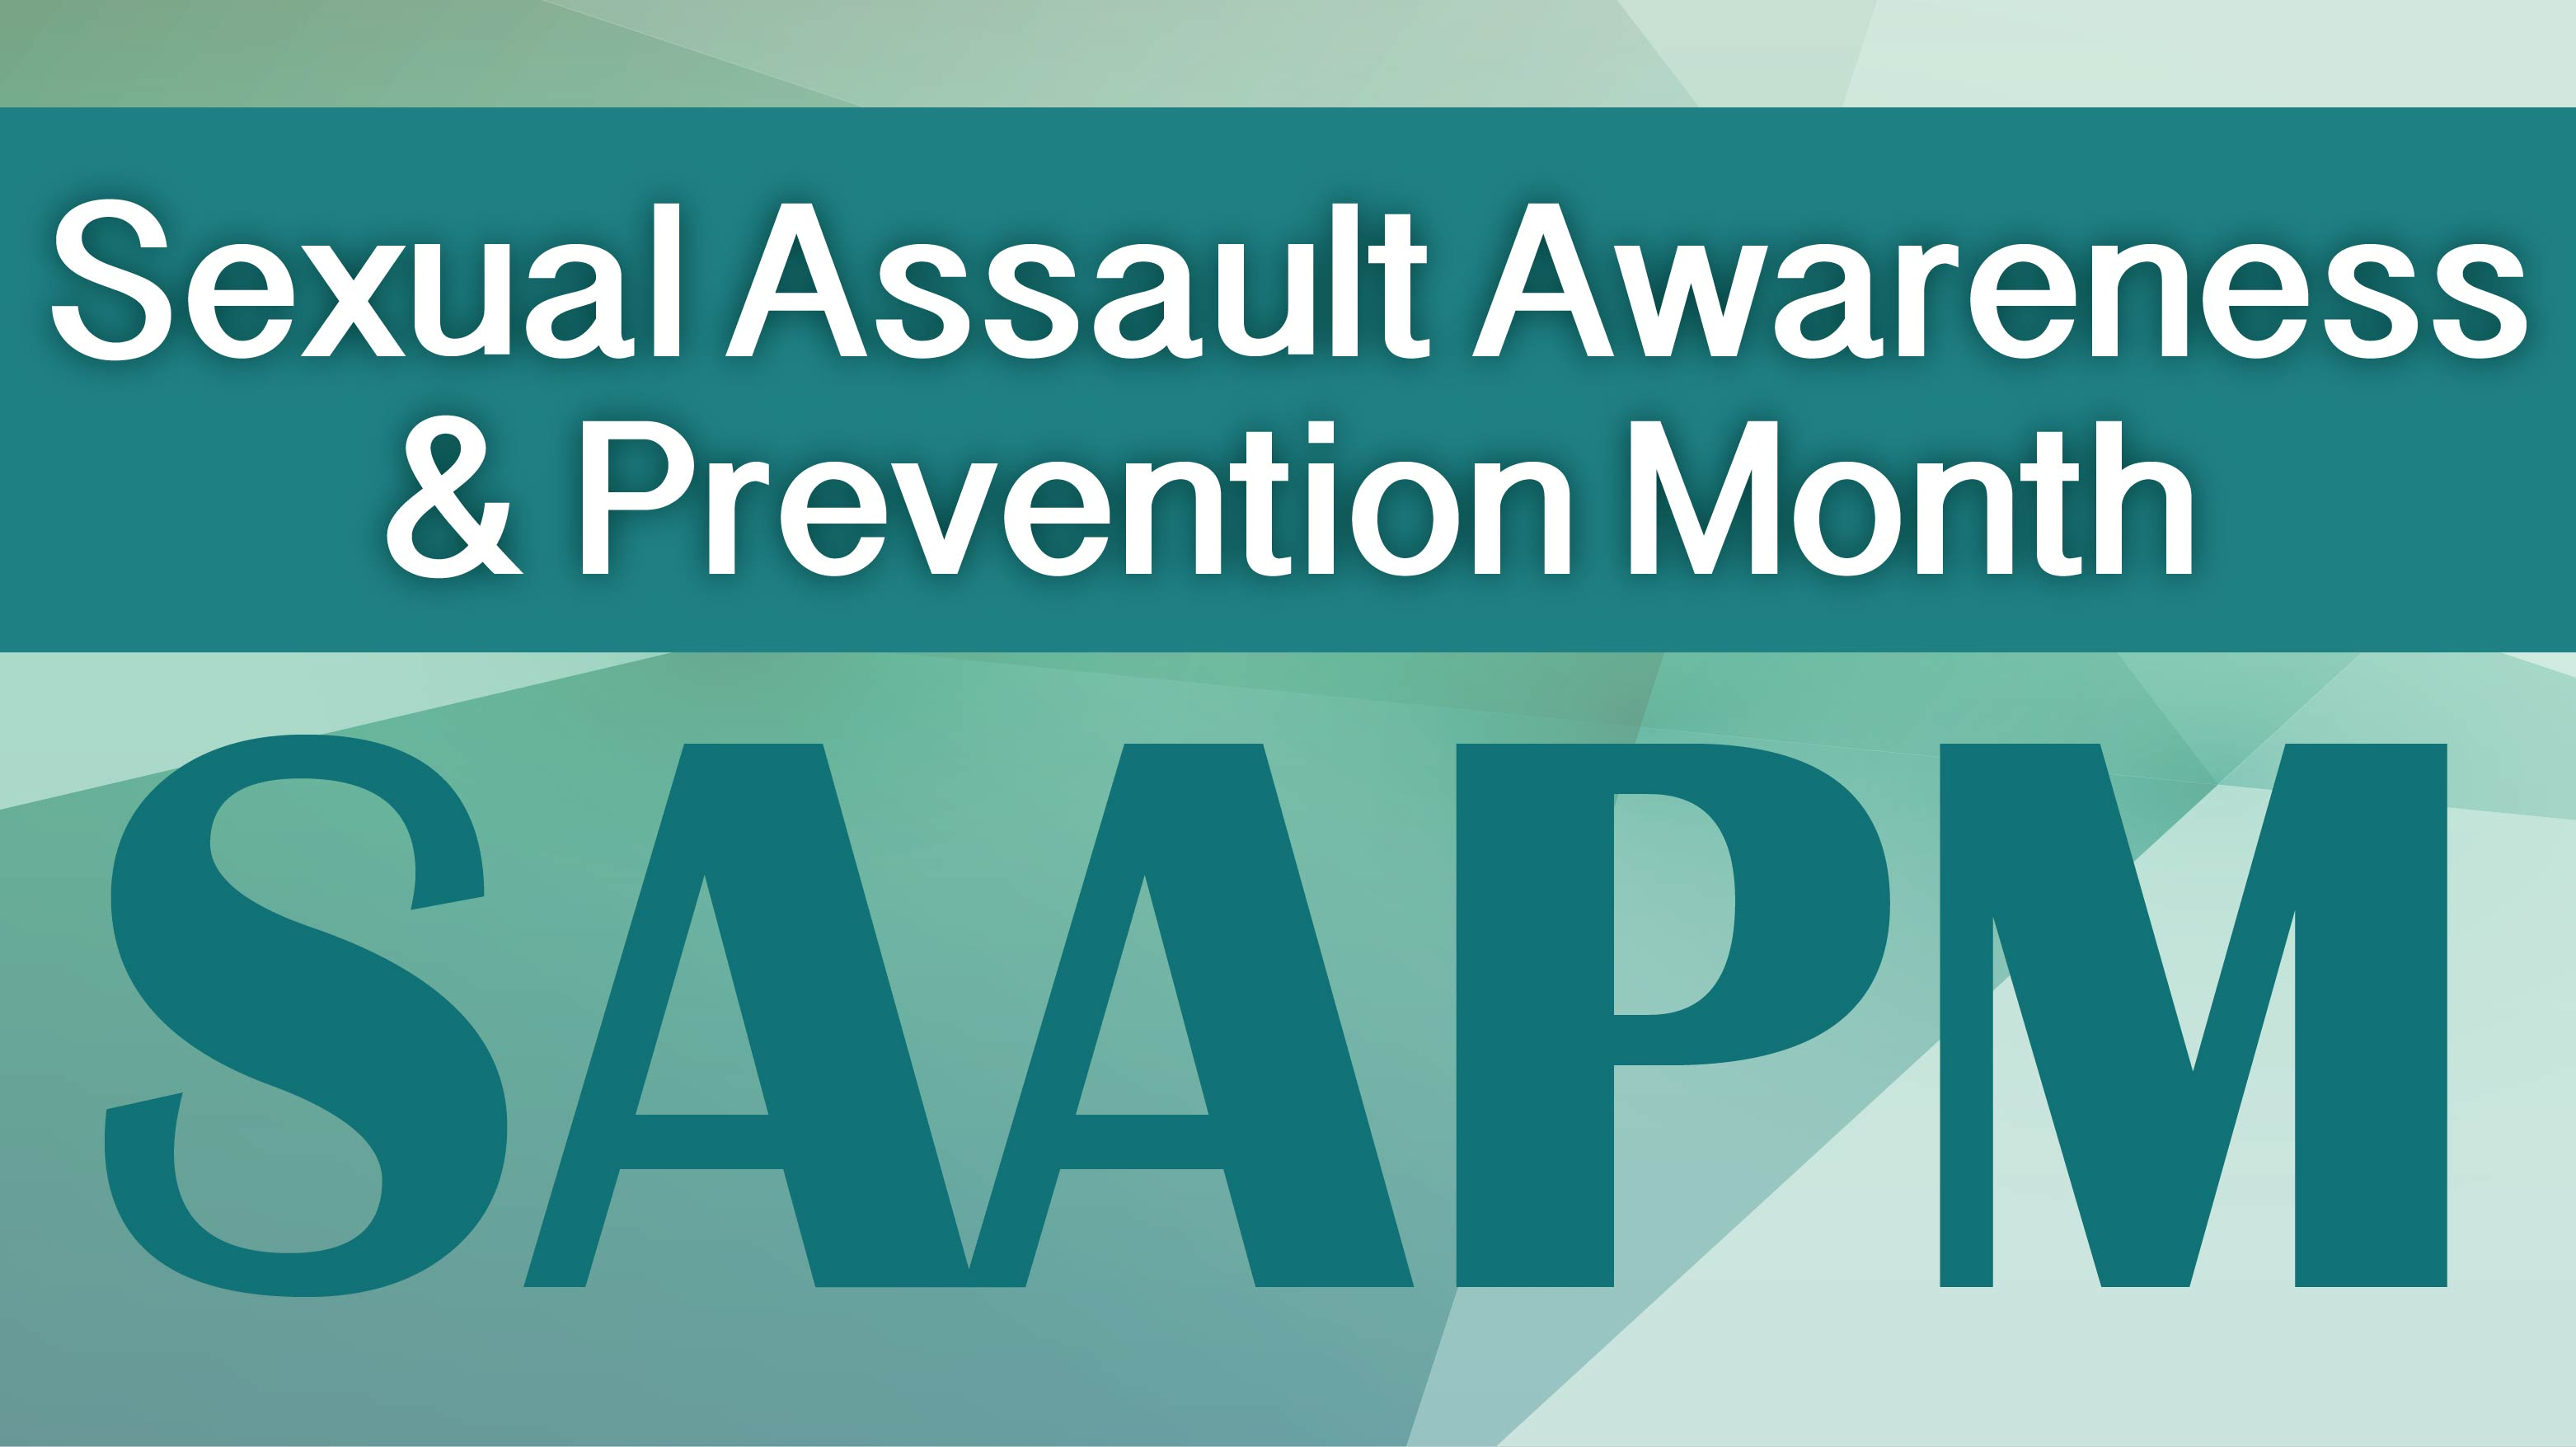 2018 Sexual Assault Awareness and Prevention Month Events List